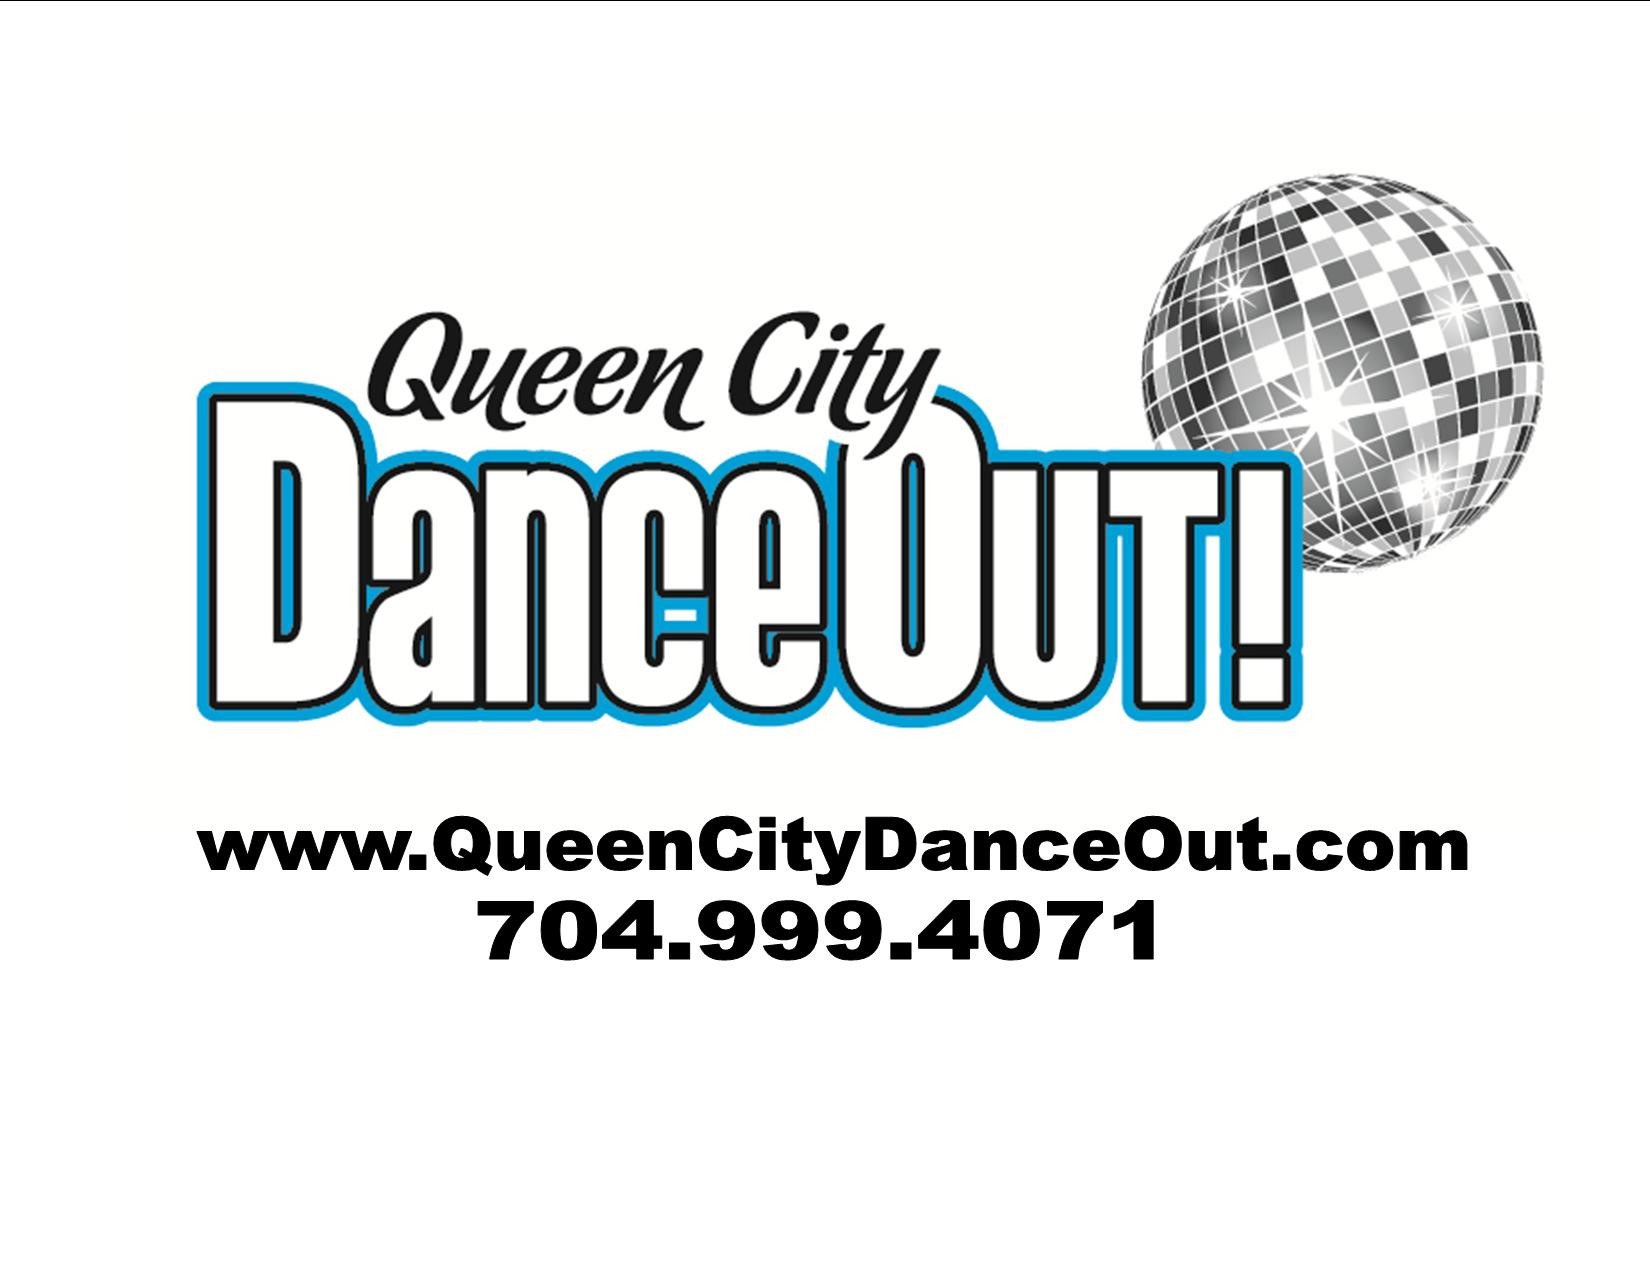 Queen City DanceOut.jpg